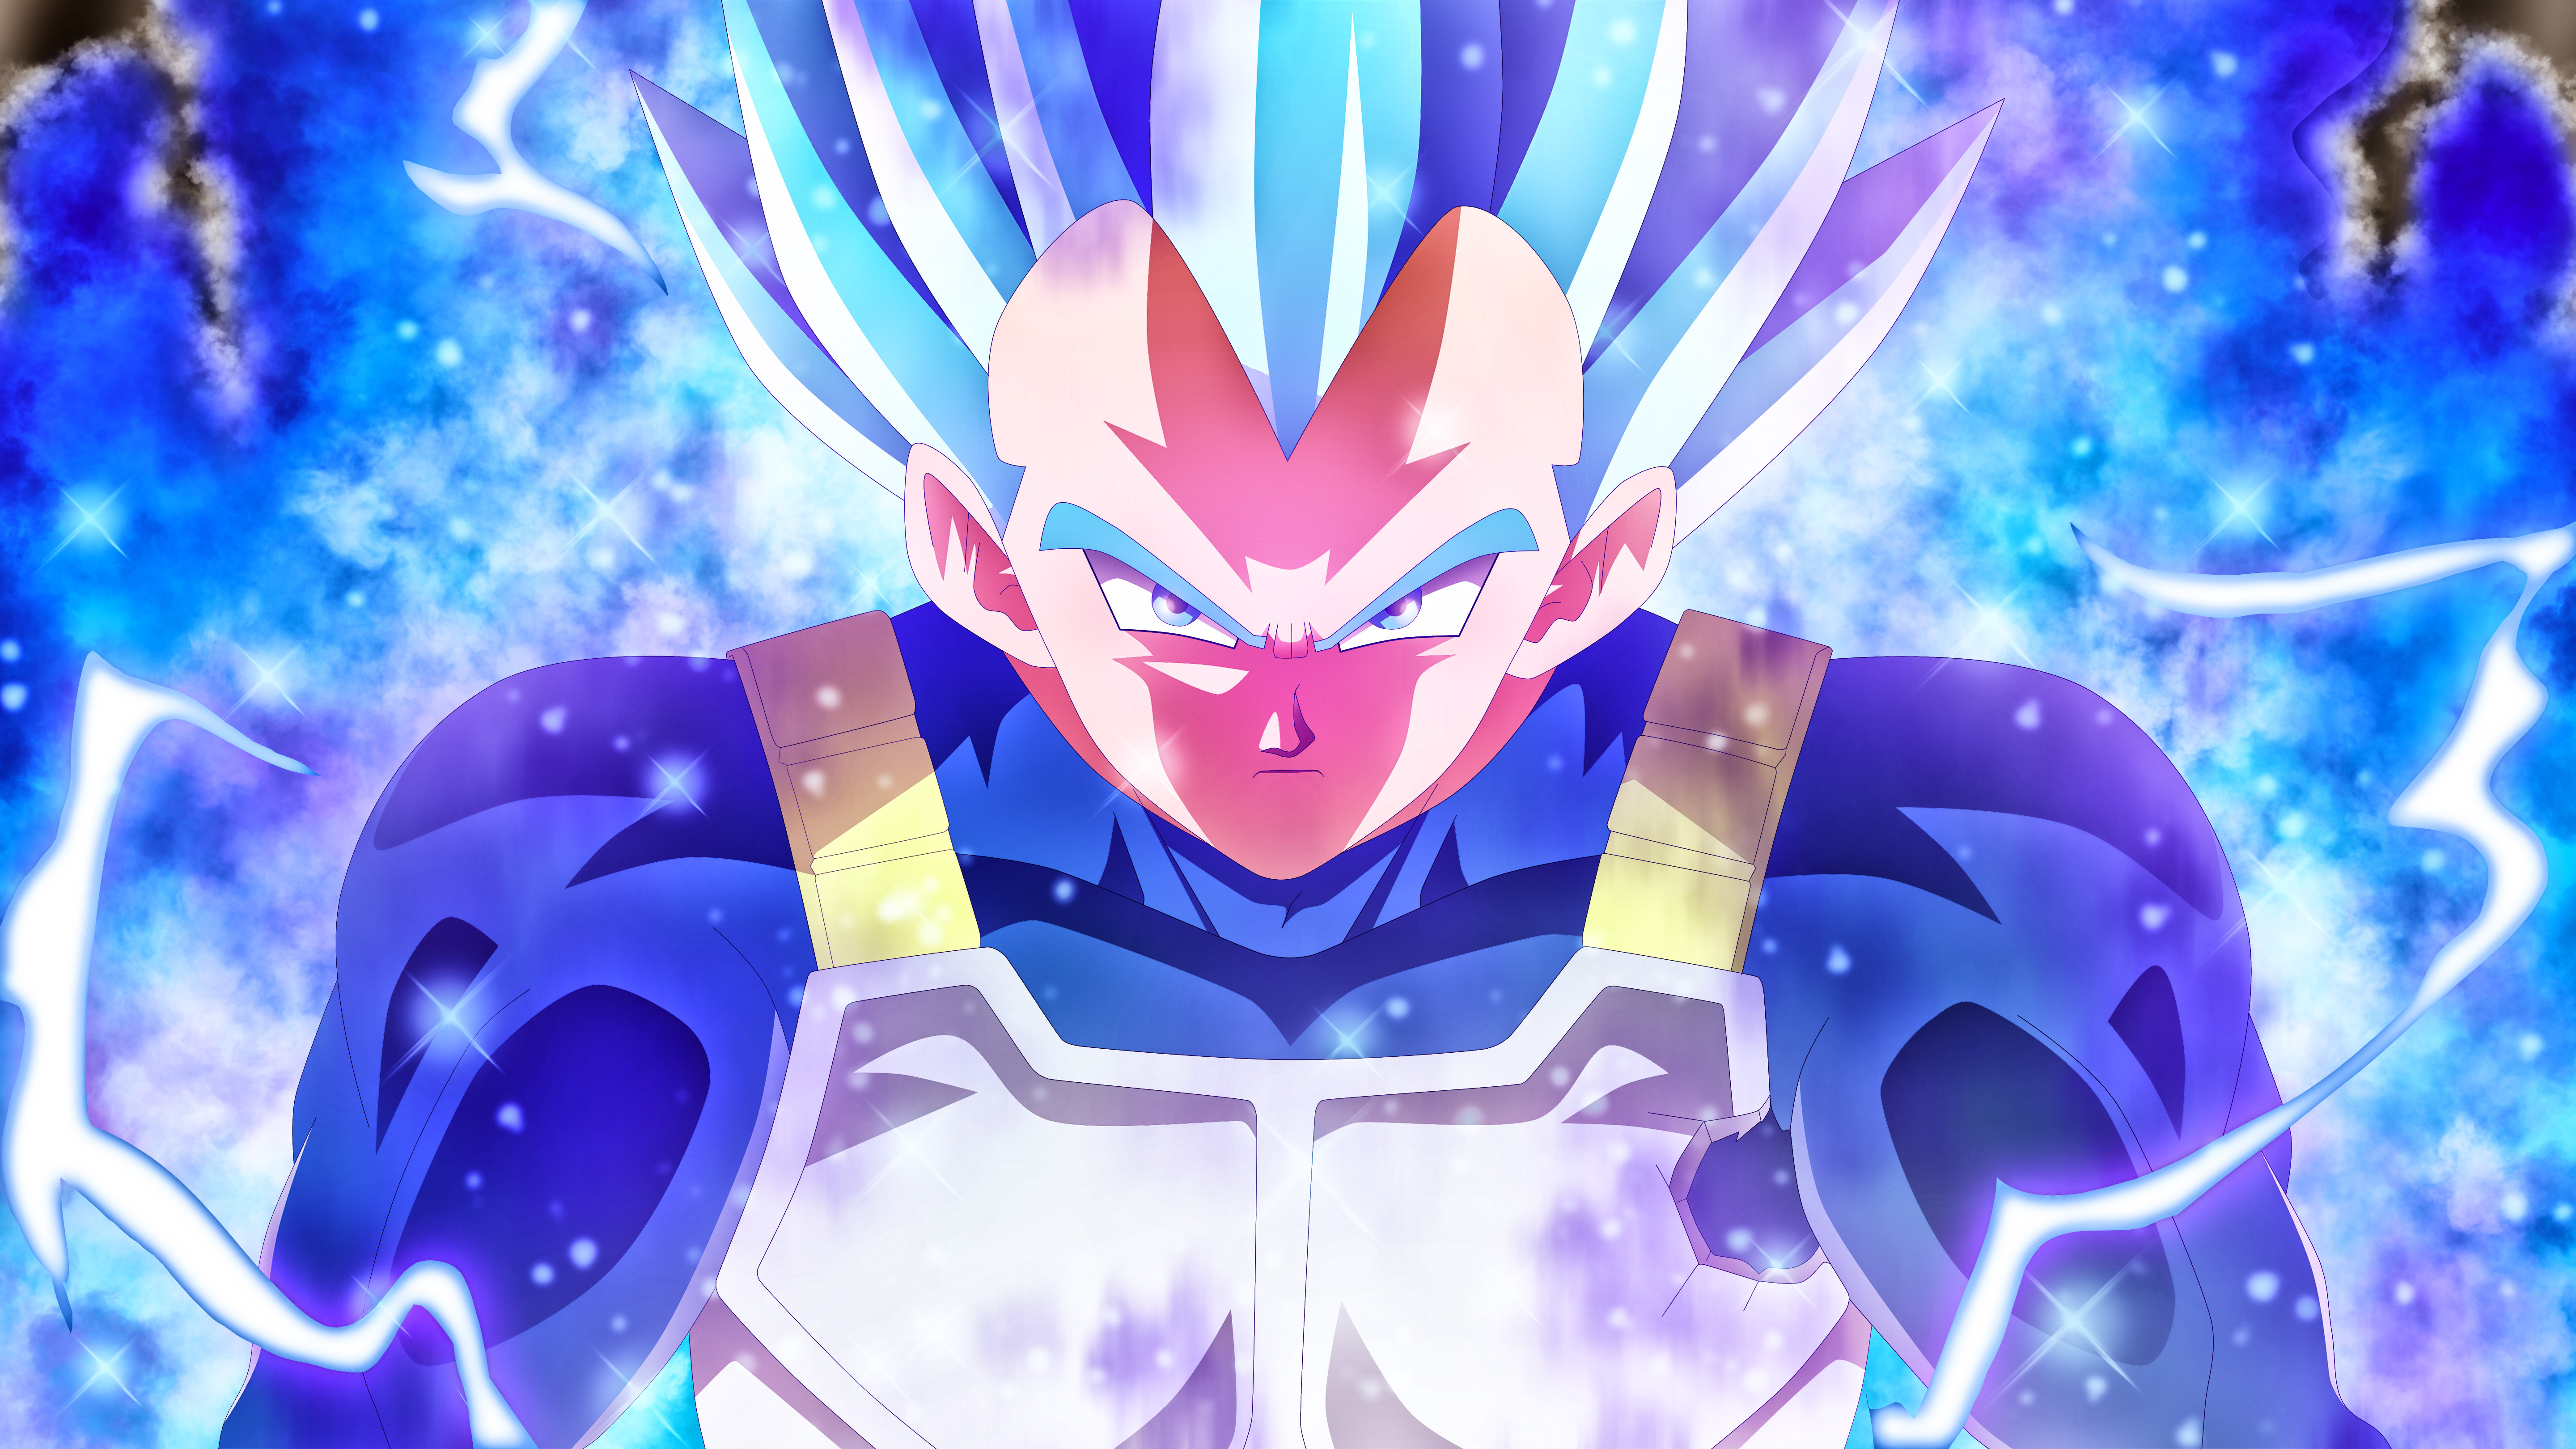 640x960 vegeta blue 5k anime iphone 4, iphone 4s hd 4k wallpapers